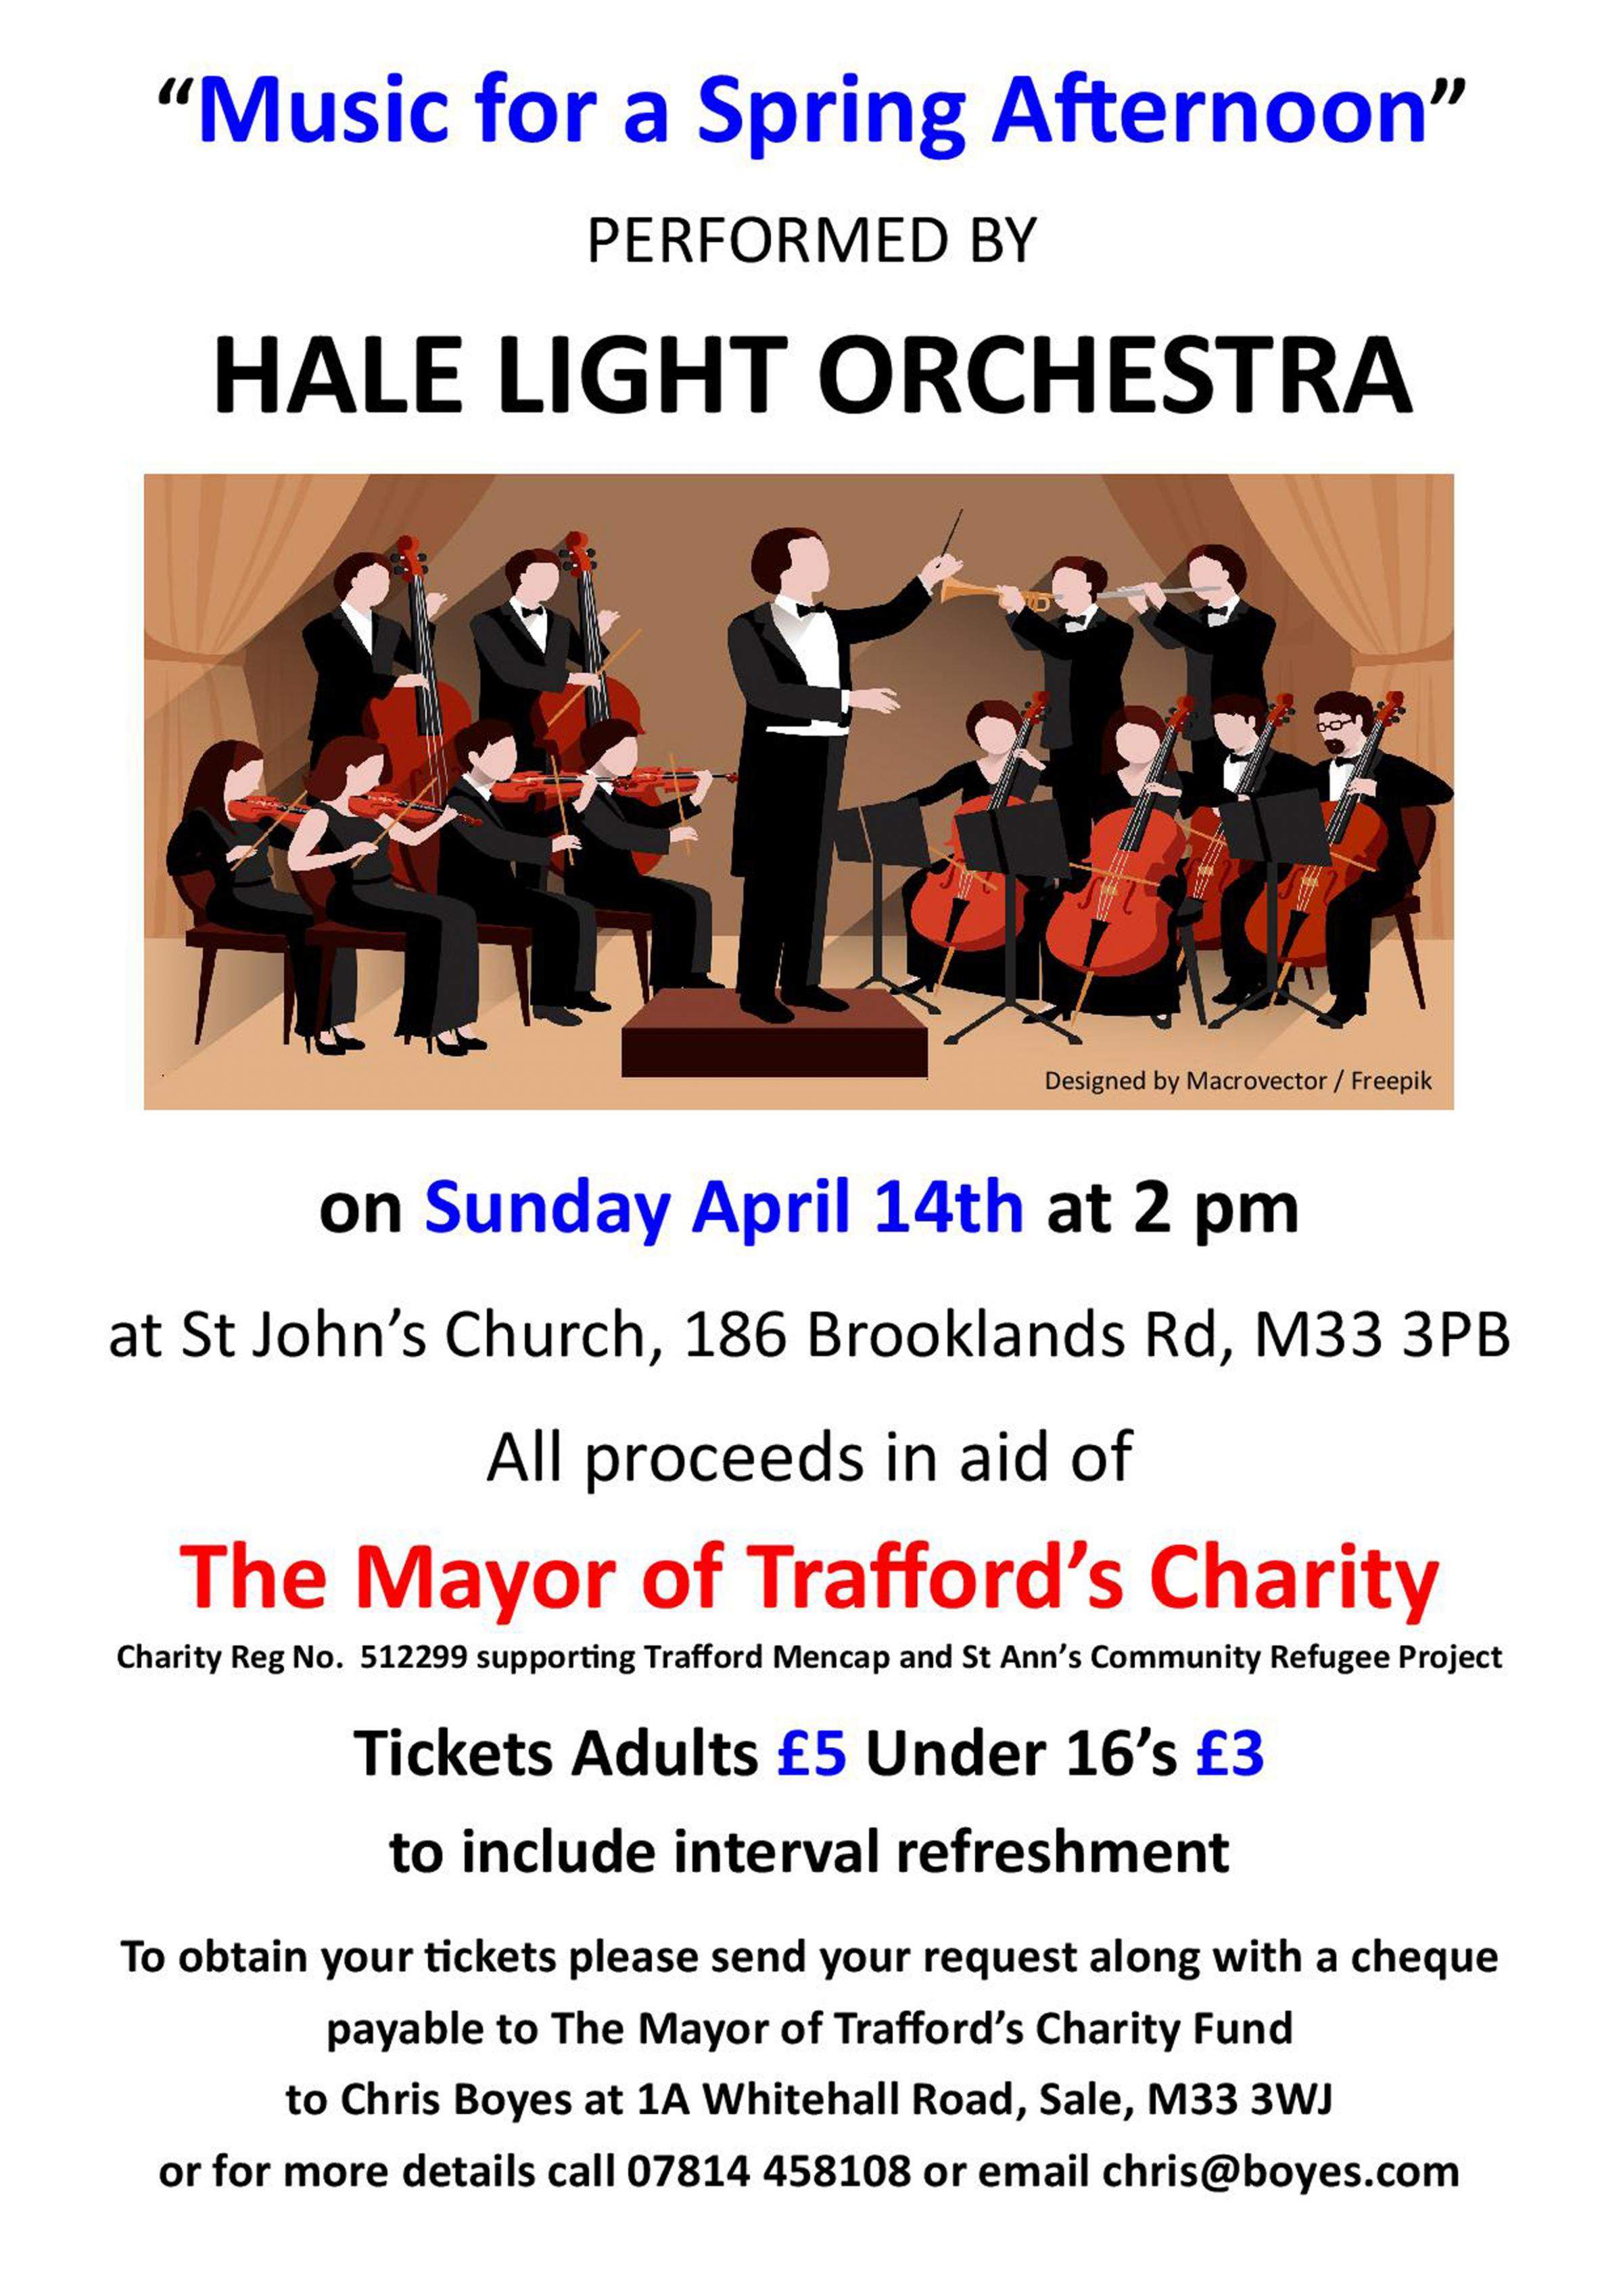 Mayor of Trafford's Charity Concert - Music for a Spring Afternoon